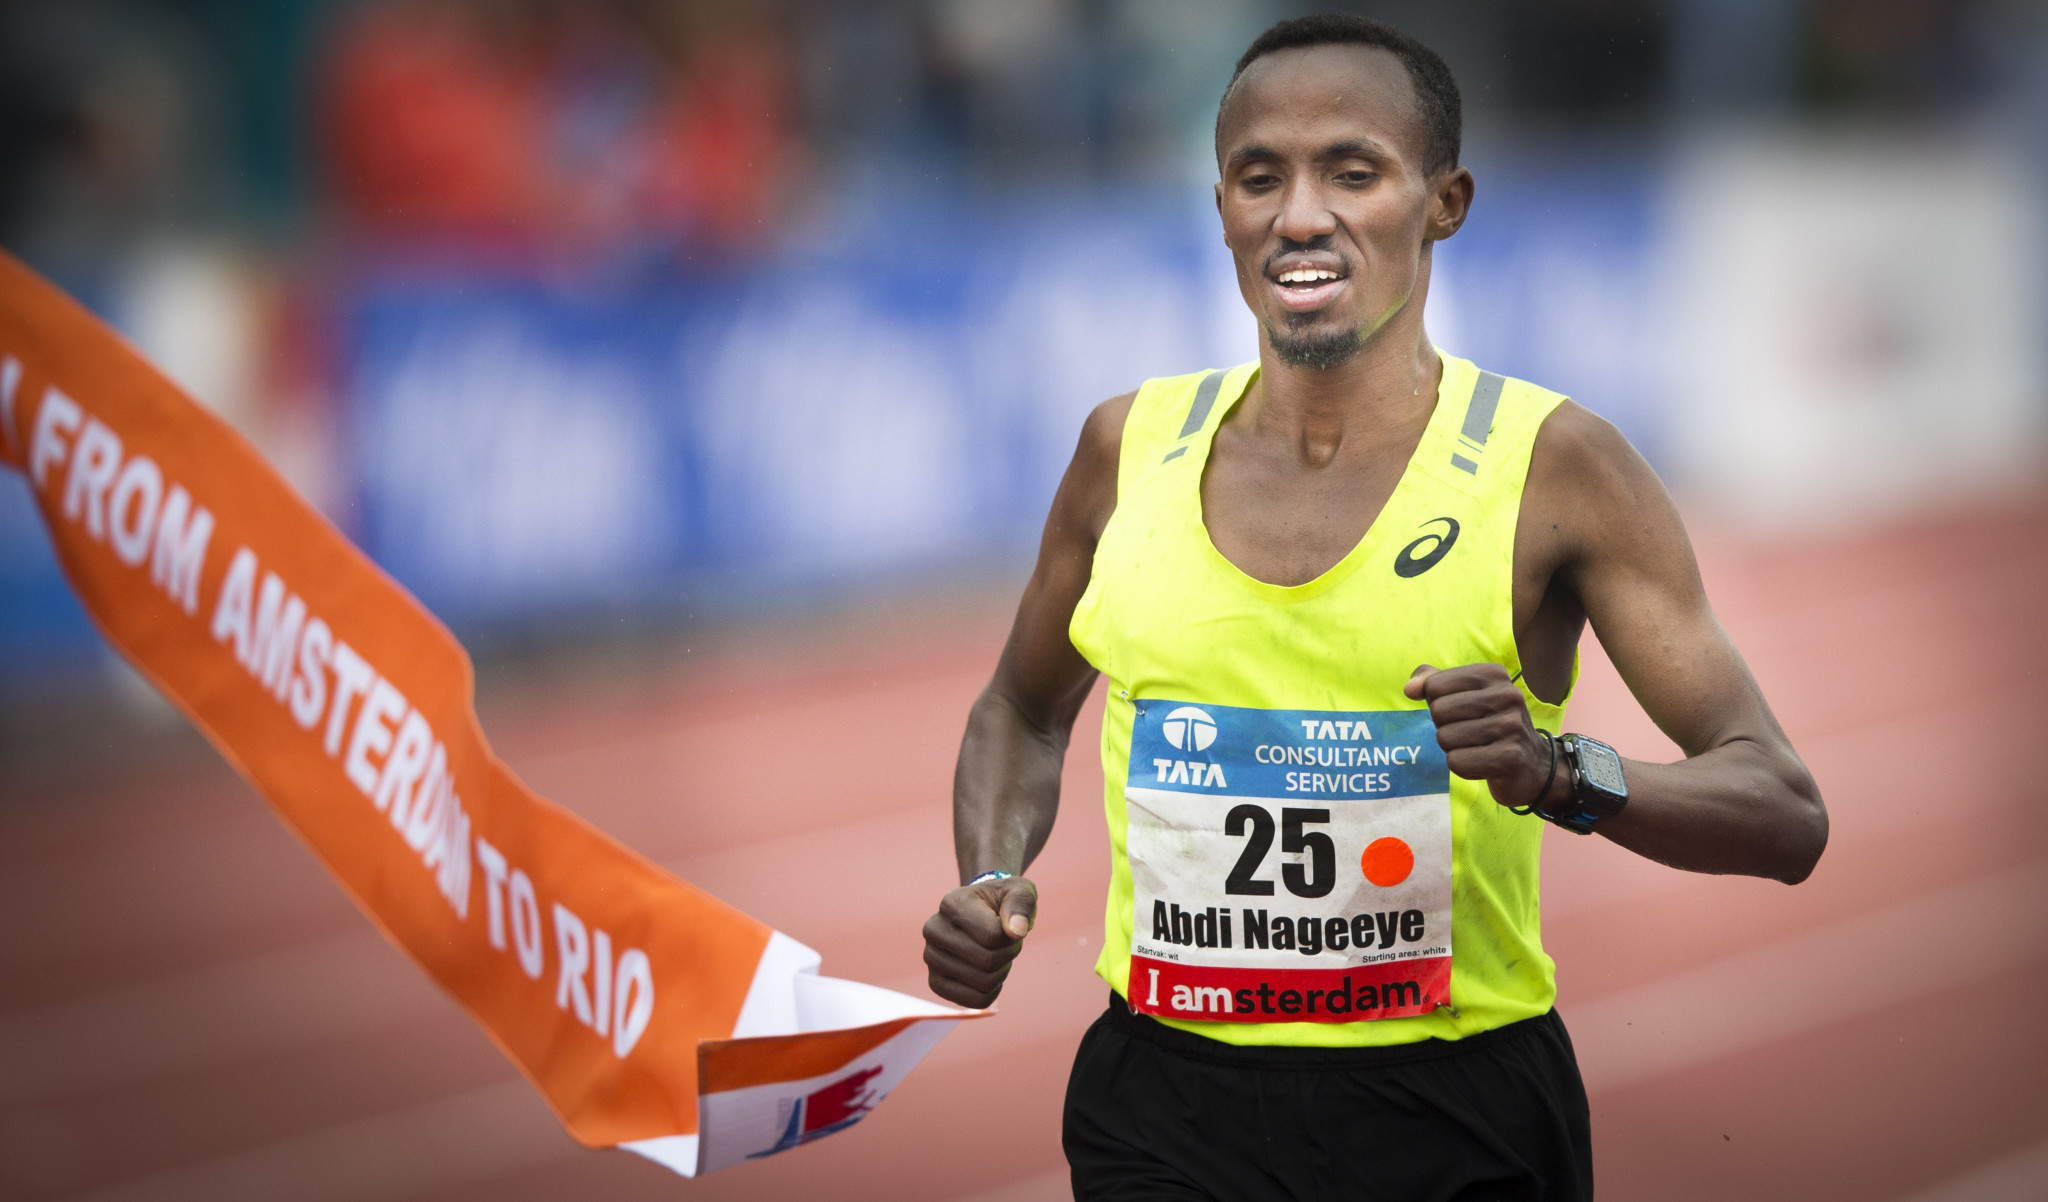 Dutch record holder Abdi Nageeye was due to headline the men's field ©Getty Images